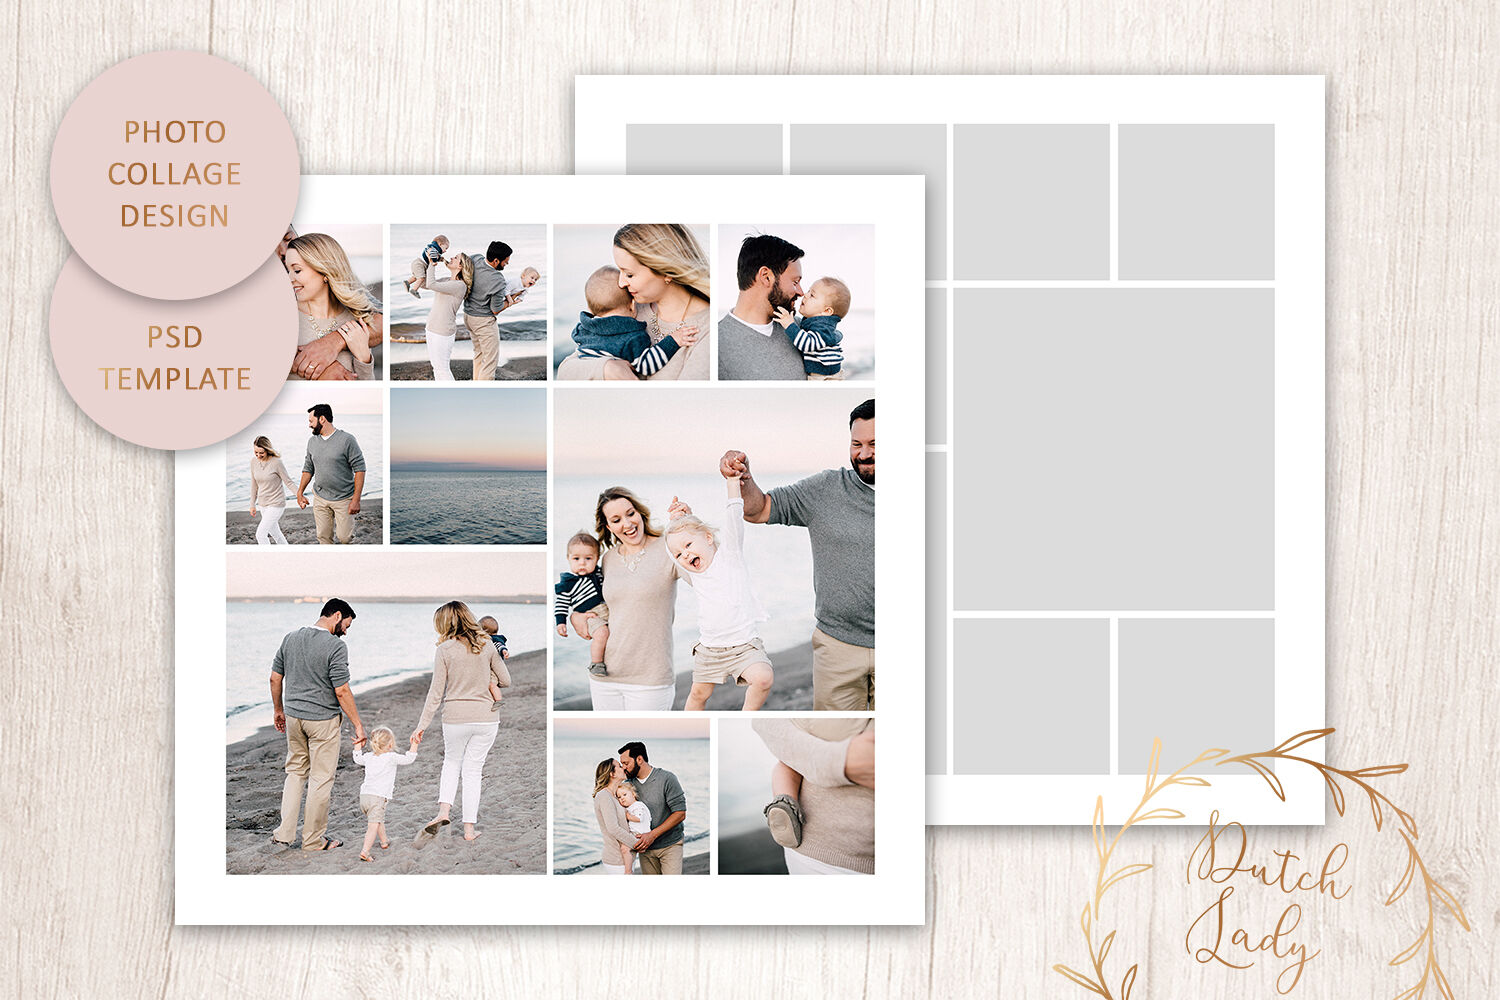 Psd Photo Image Collage Template 2 By The Dutch Lady Designs